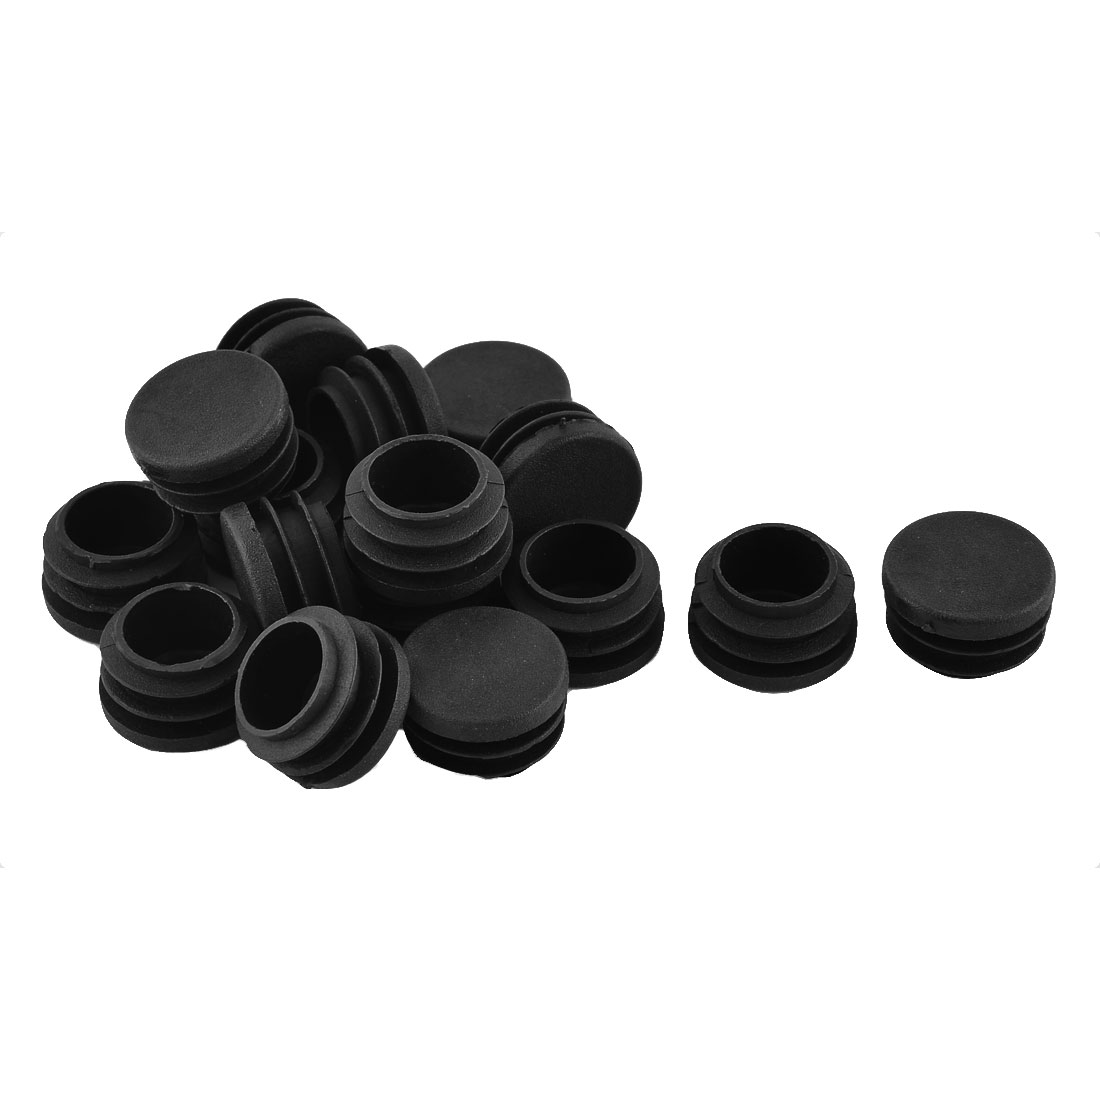 Furniture Table Chair Plastic Round Tube Insert Floor Protectors 28mm Dia 16pcs